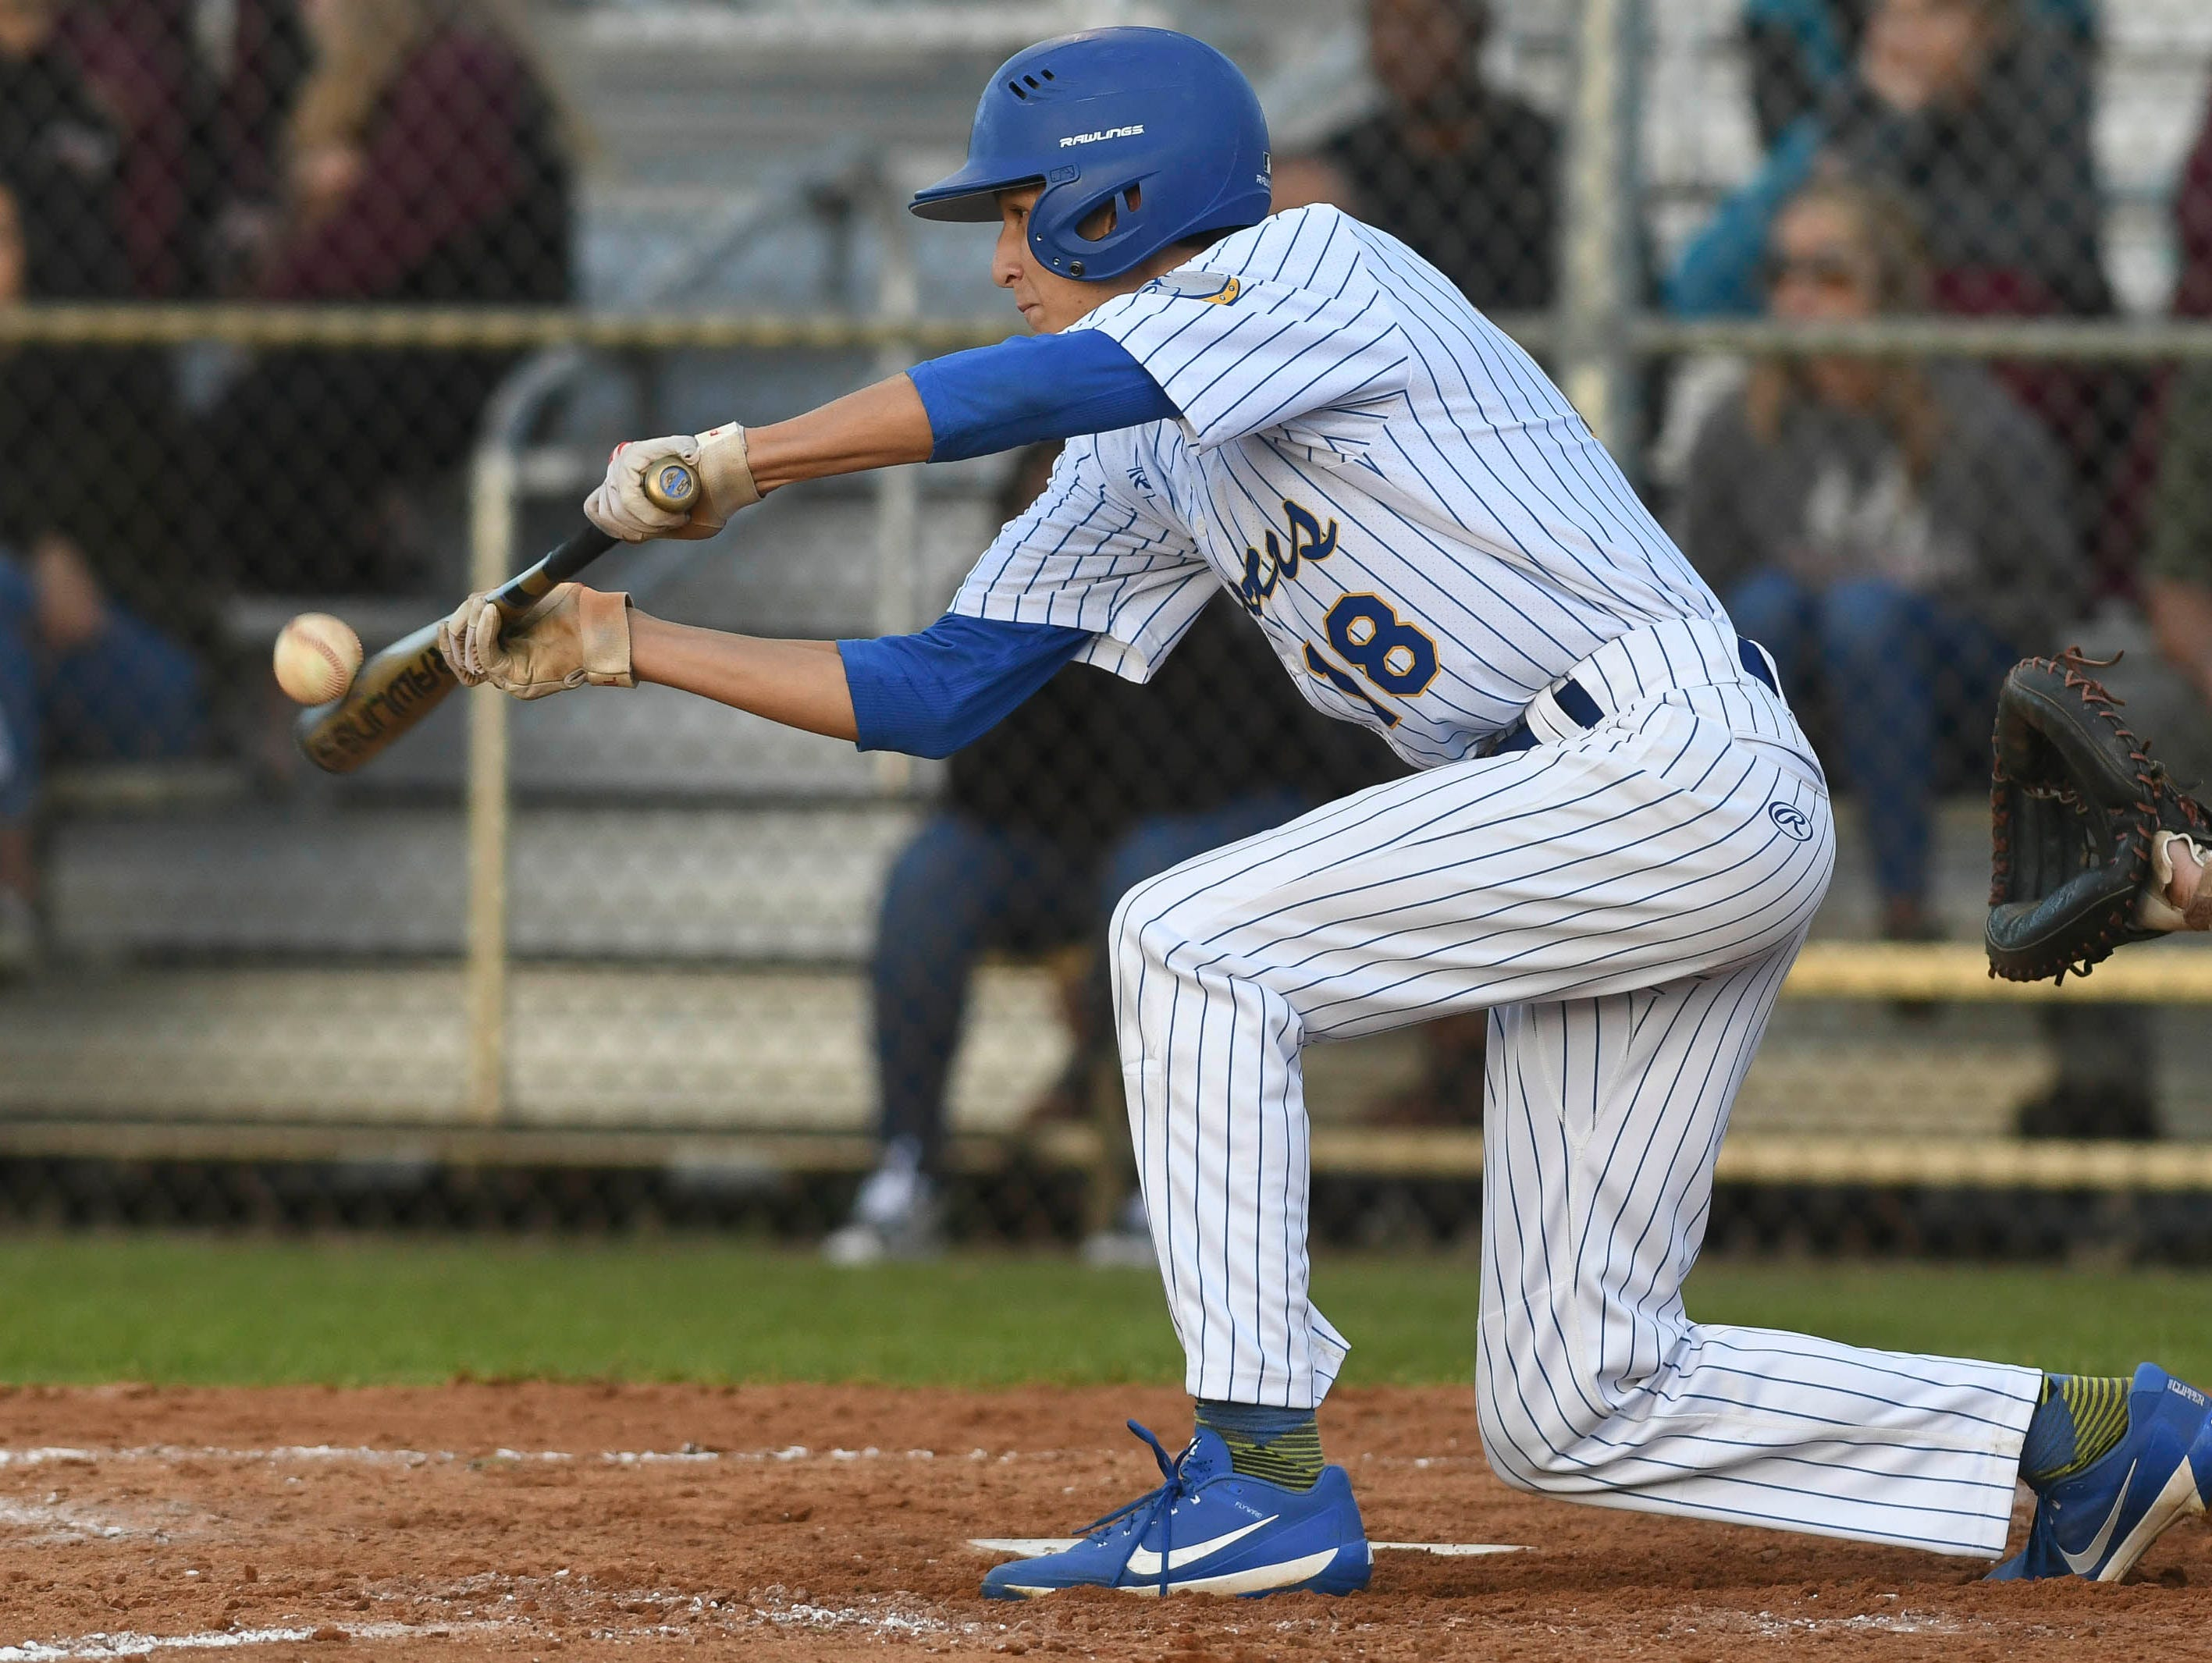 Titusville's Mikey Wiirre attempts a bunt during Thursday's game against Astronaut.